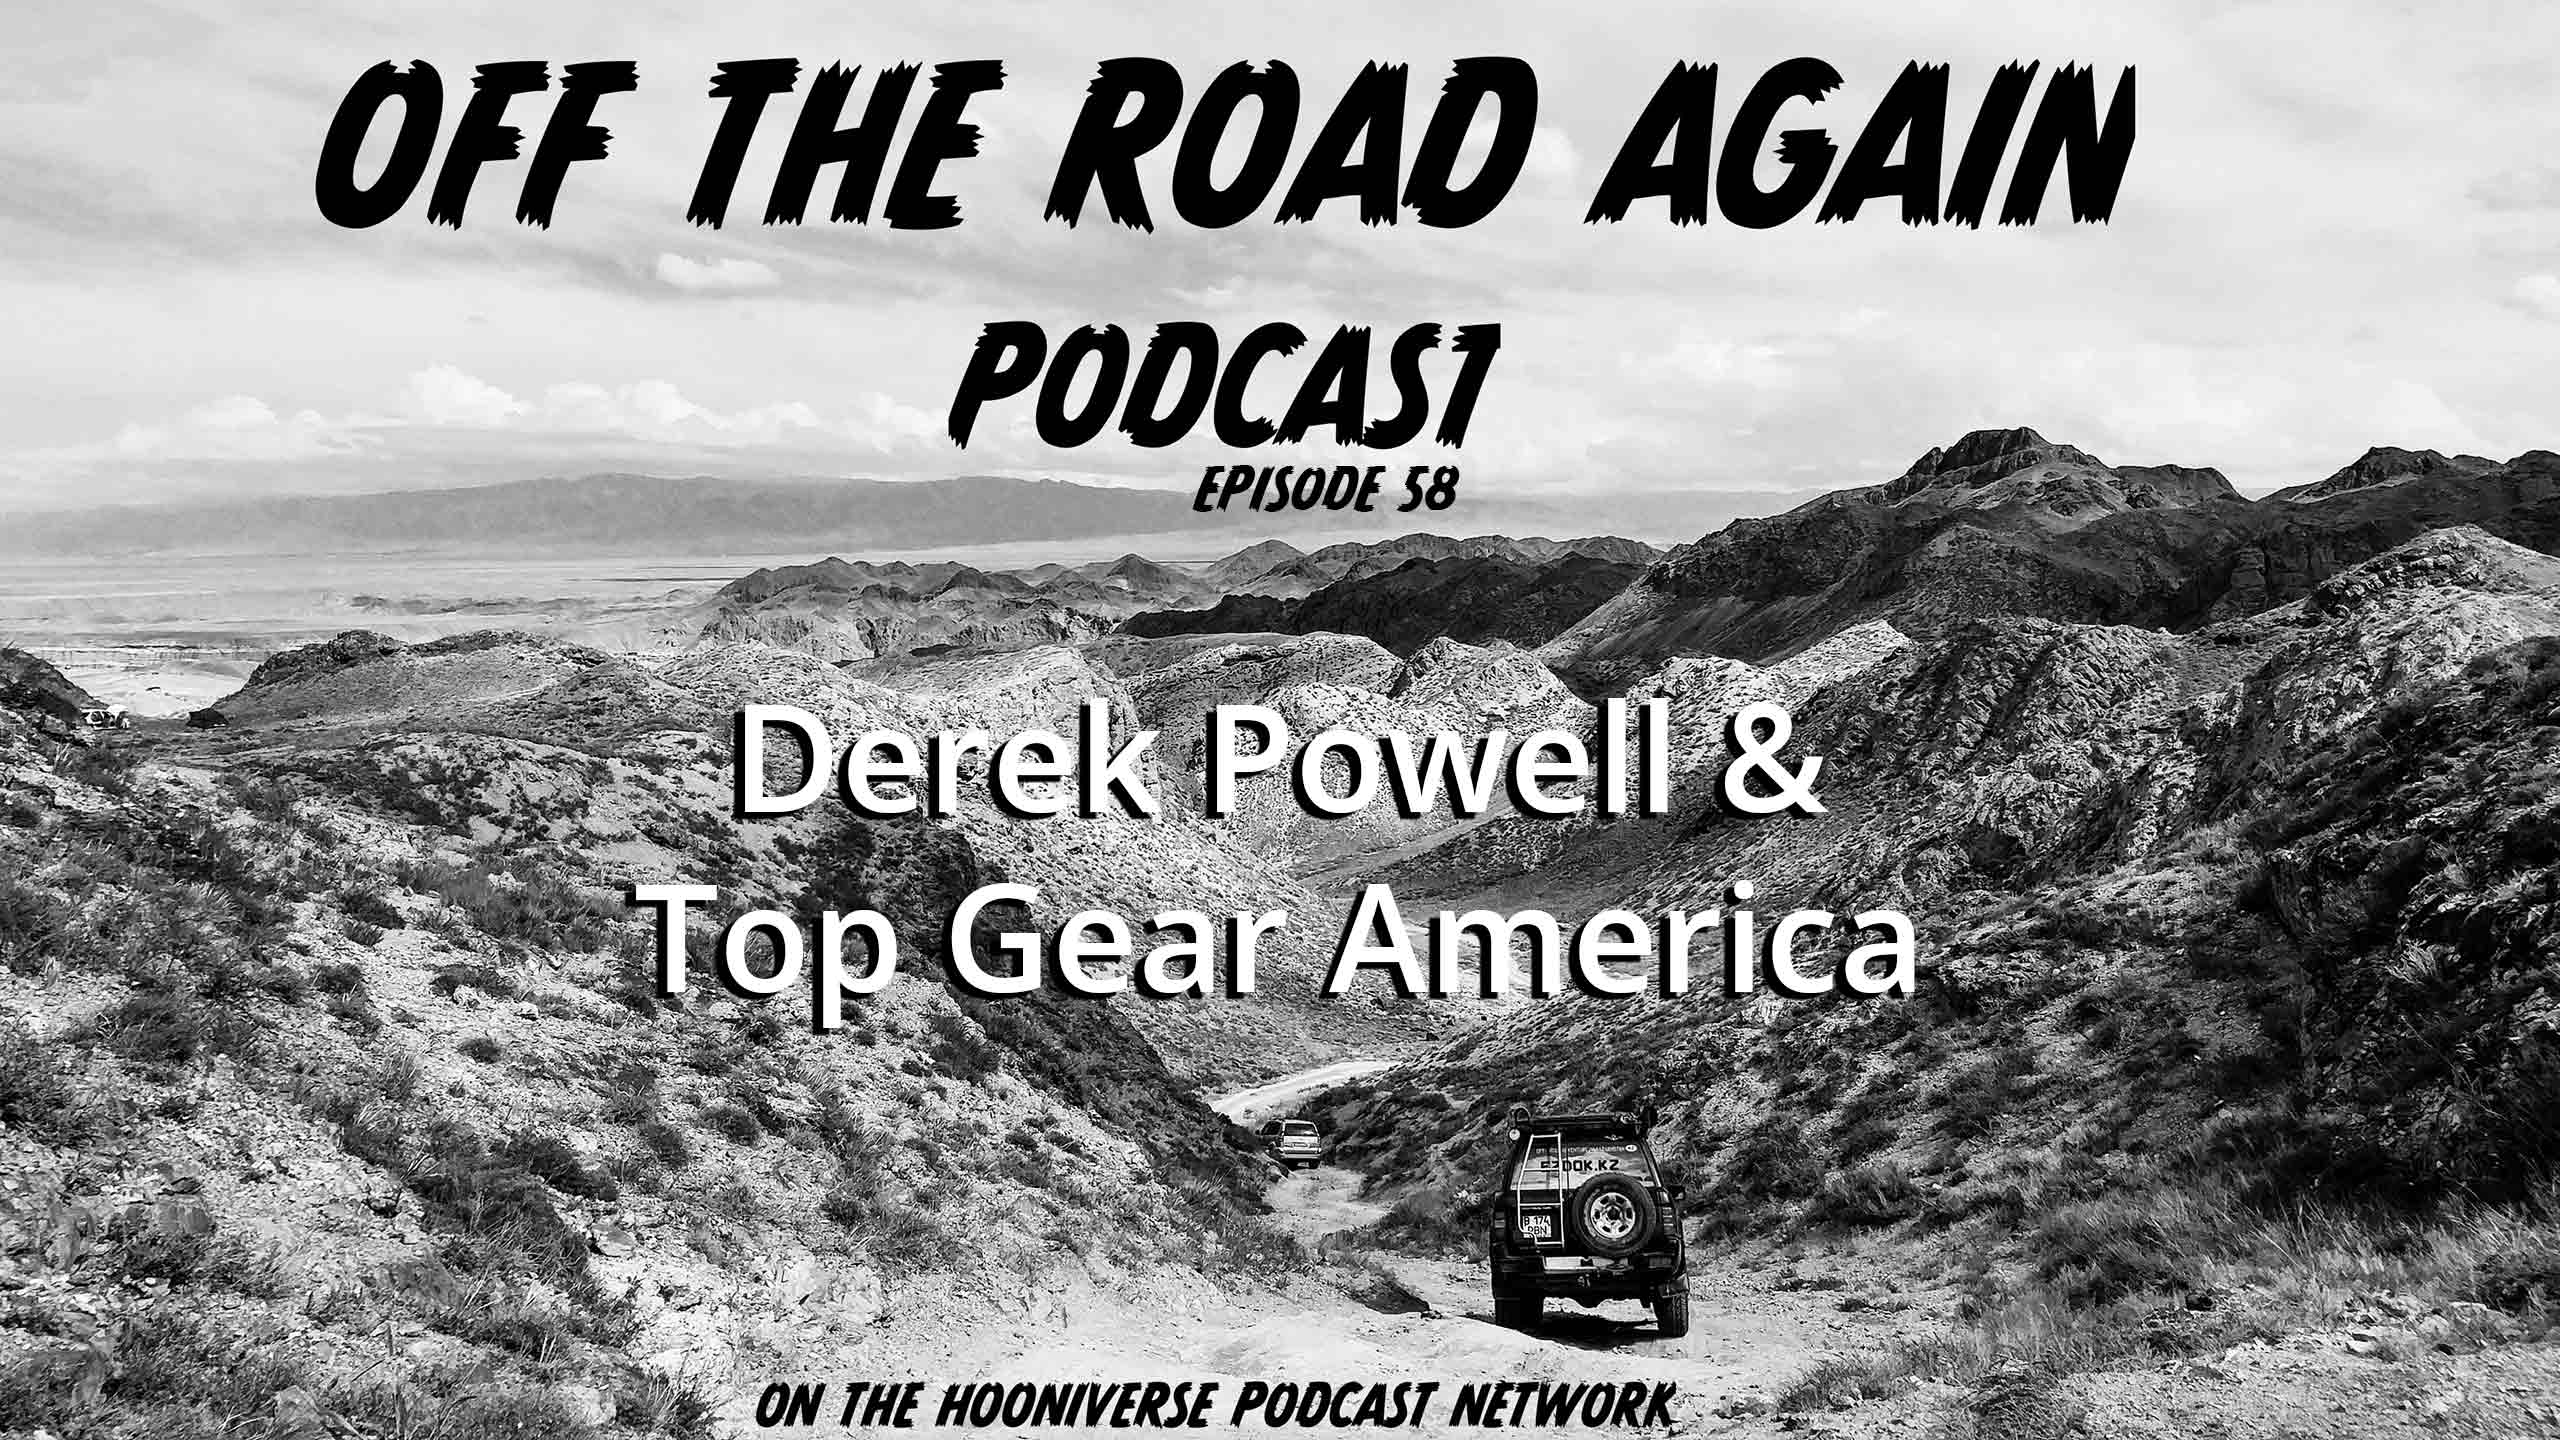 Derek-Powell-Top-Gear-America-Off-The-Road-Again-Podcast-Episode-58